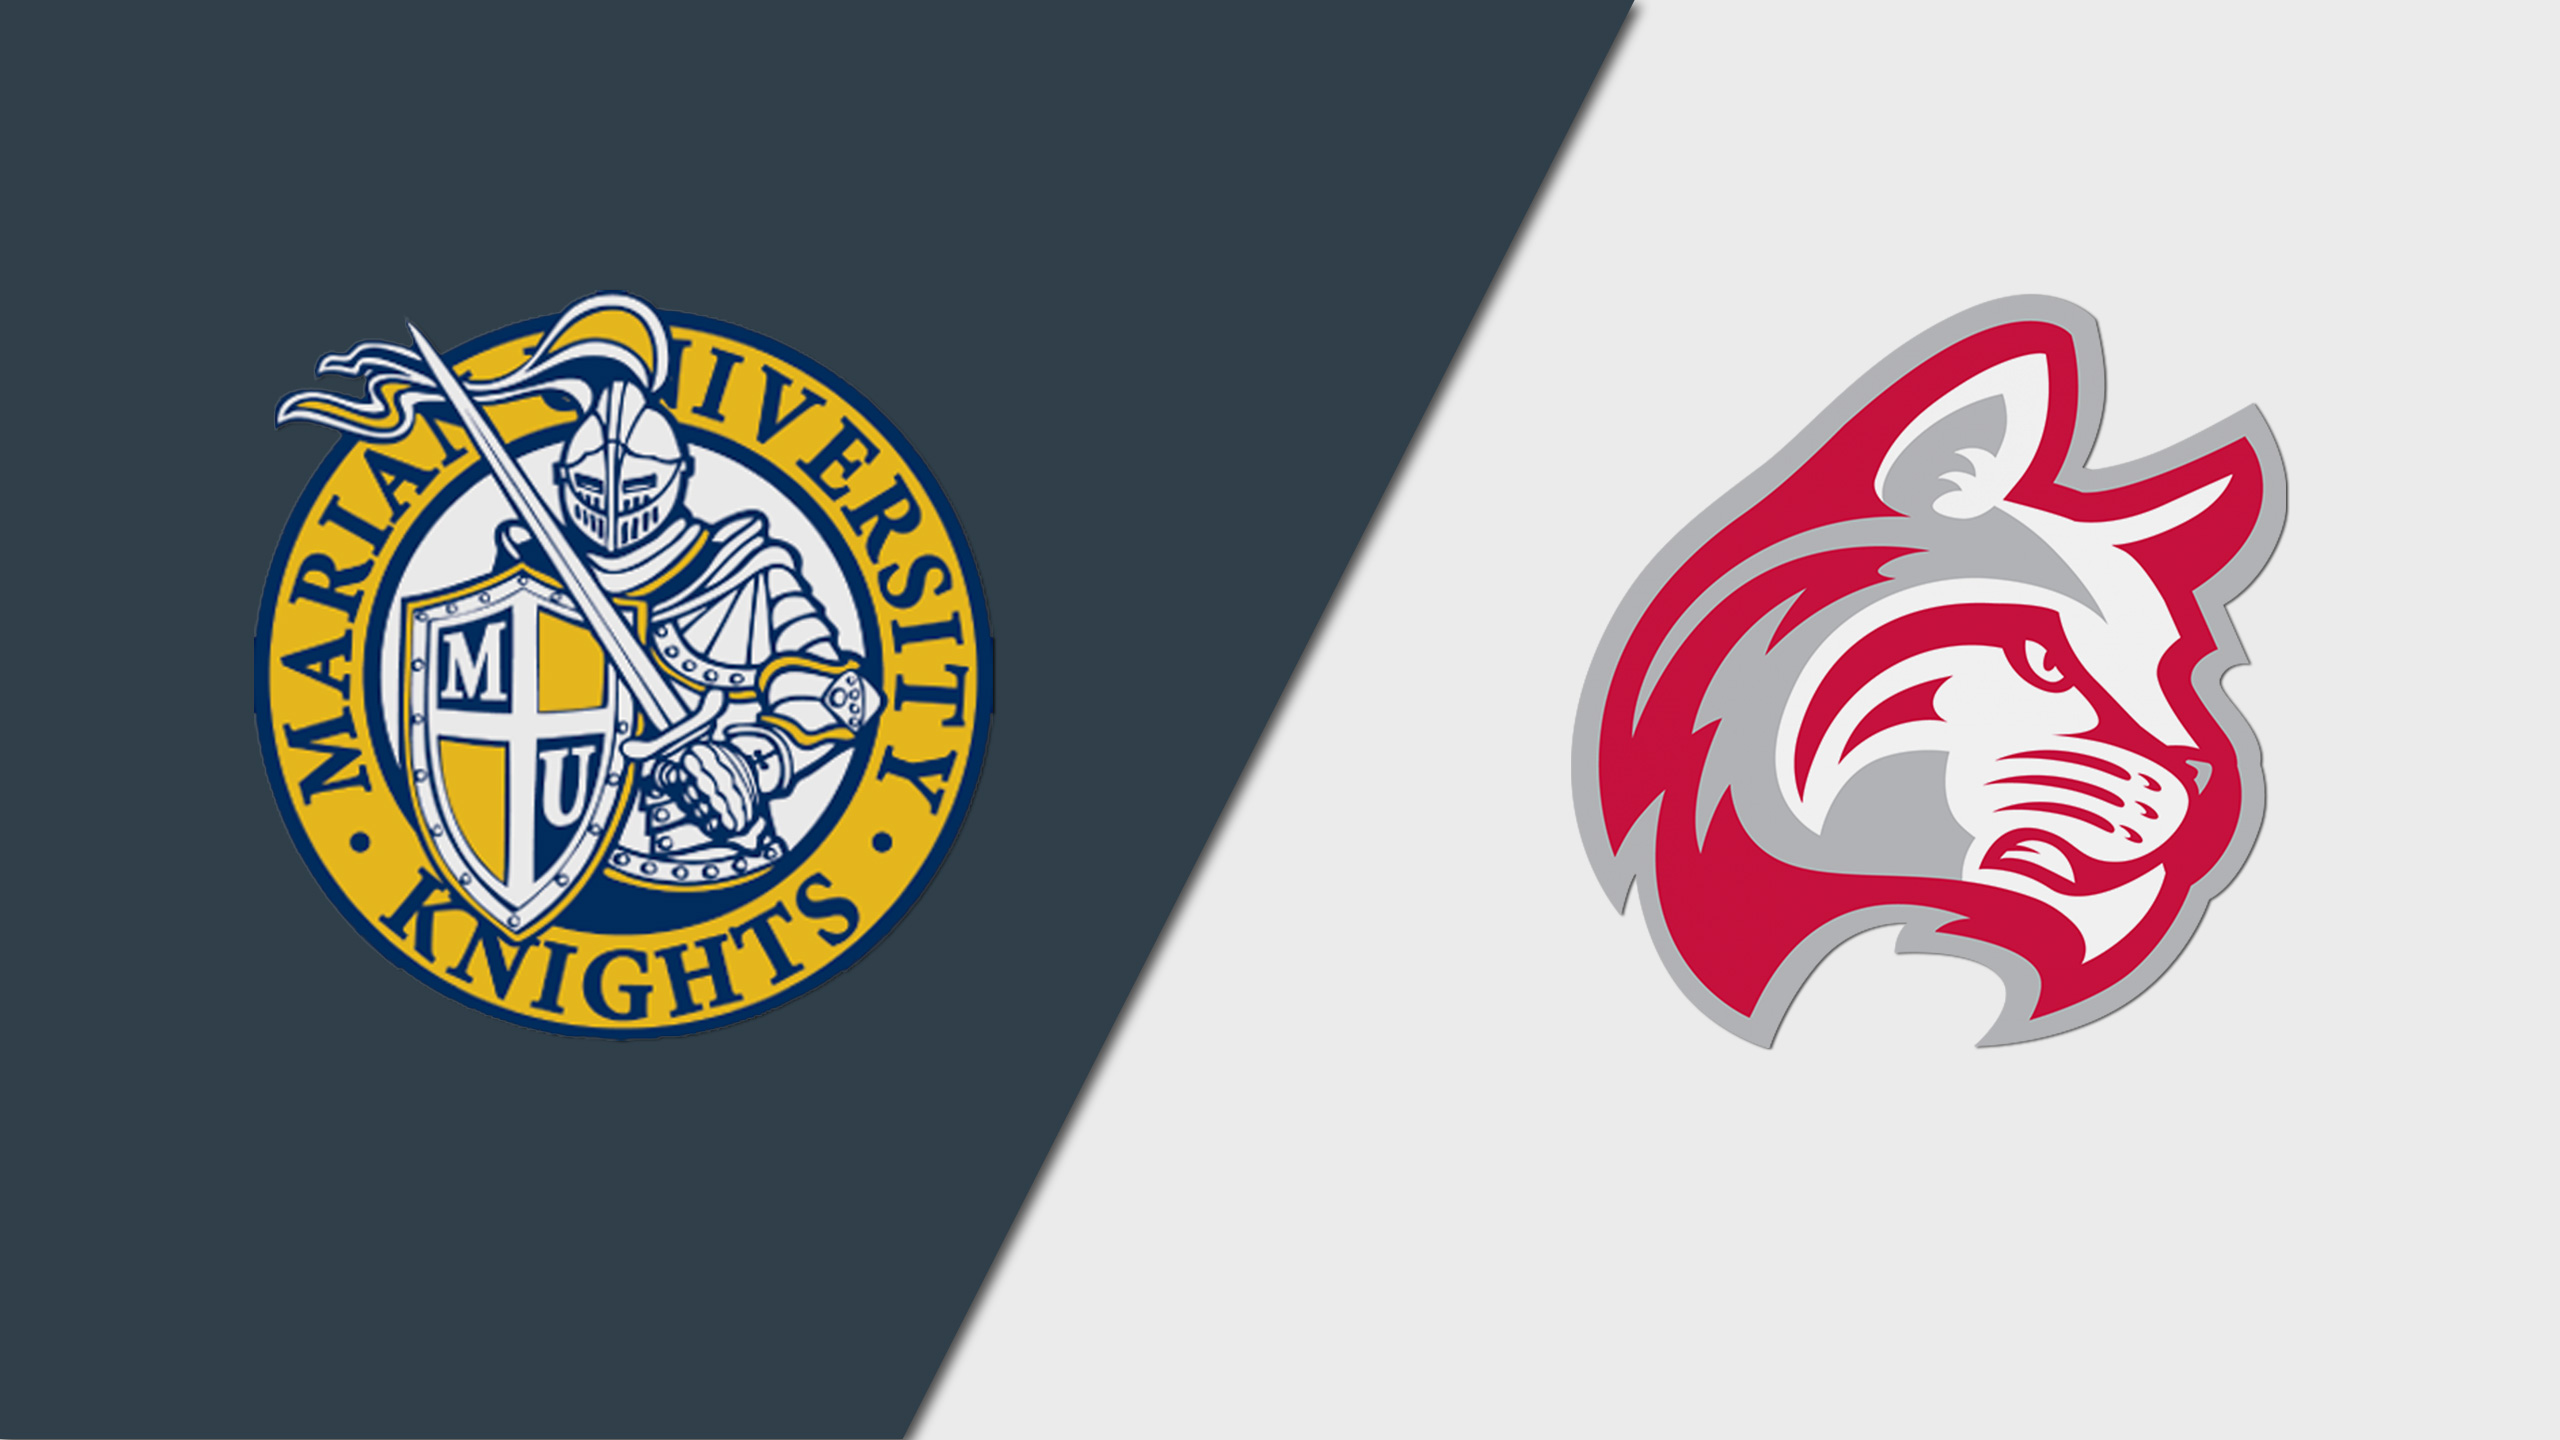 Marian (IN) vs. Indiana Wesleyan (Semifinal) (M Basketball)